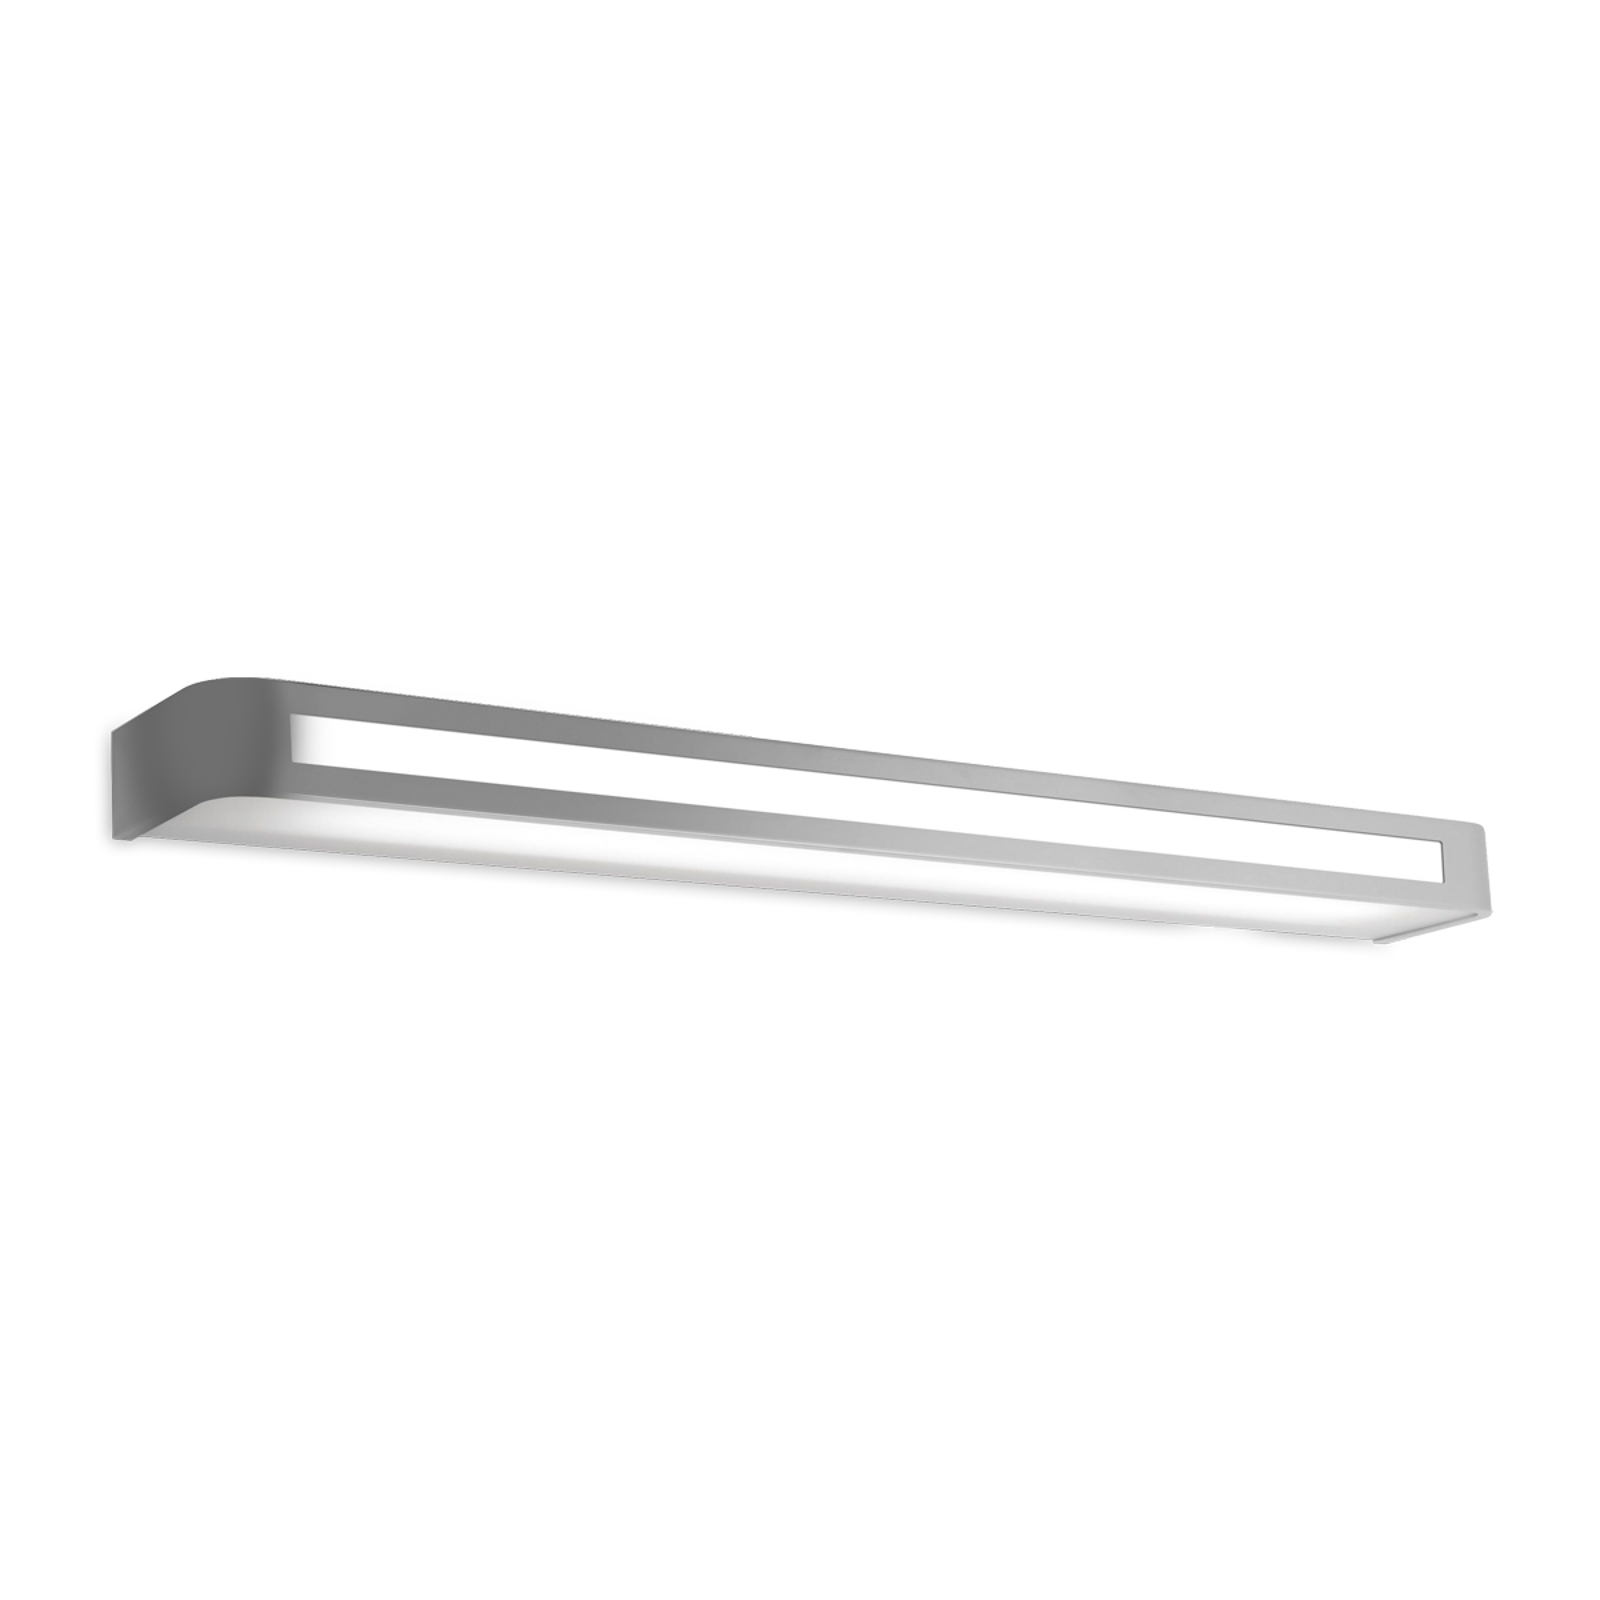 Applique LED Arcos intemporelle, IP20 90cm, chromé